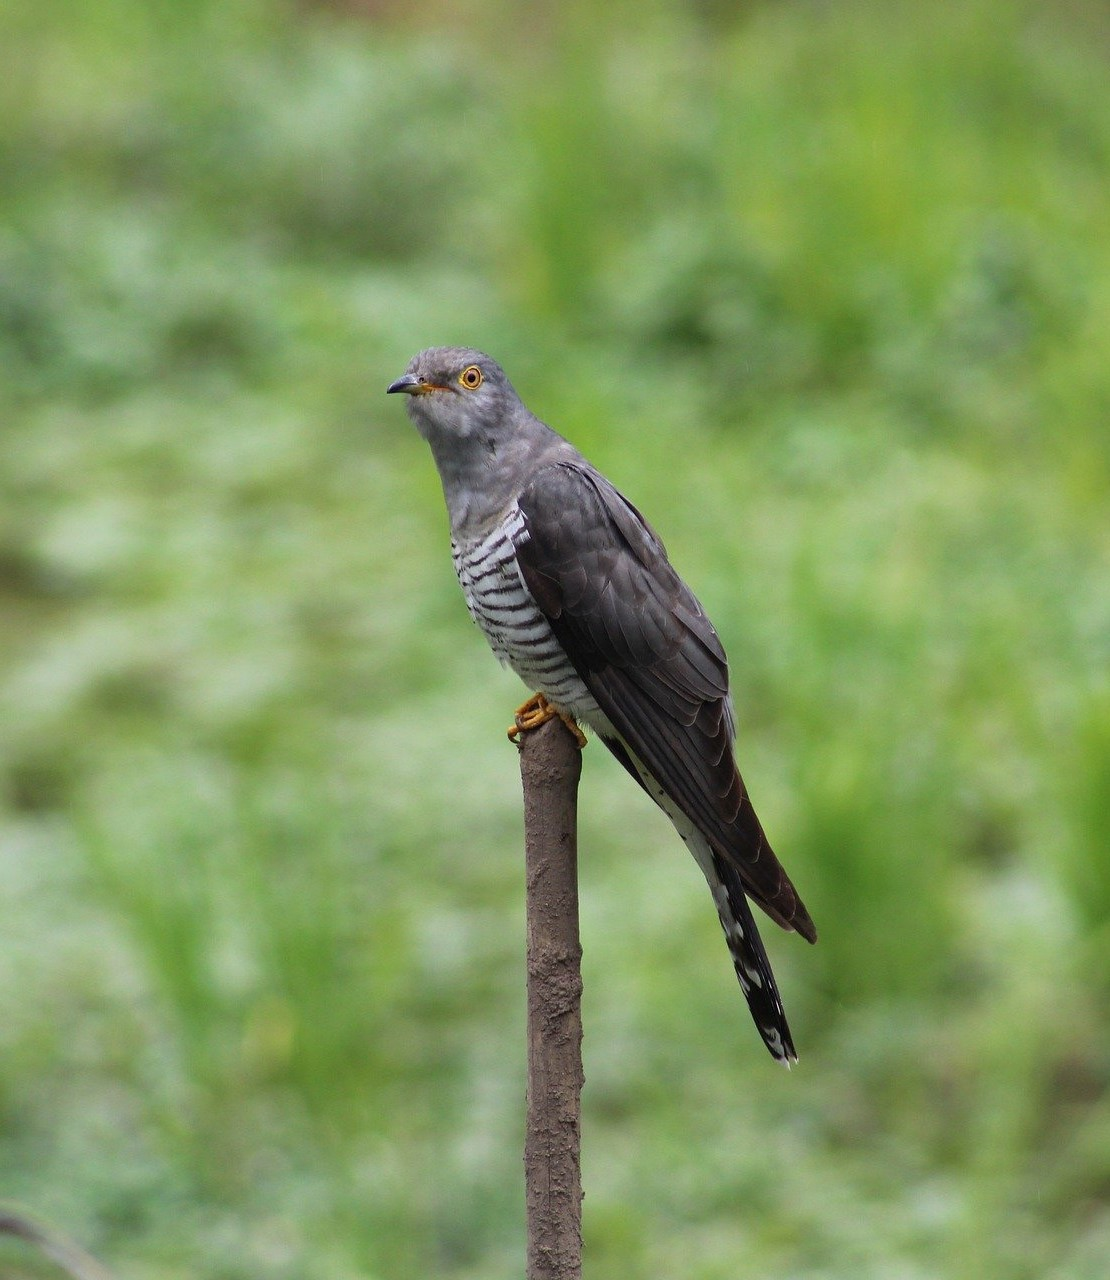 6 May - Cuckoo? Where are you? - 2